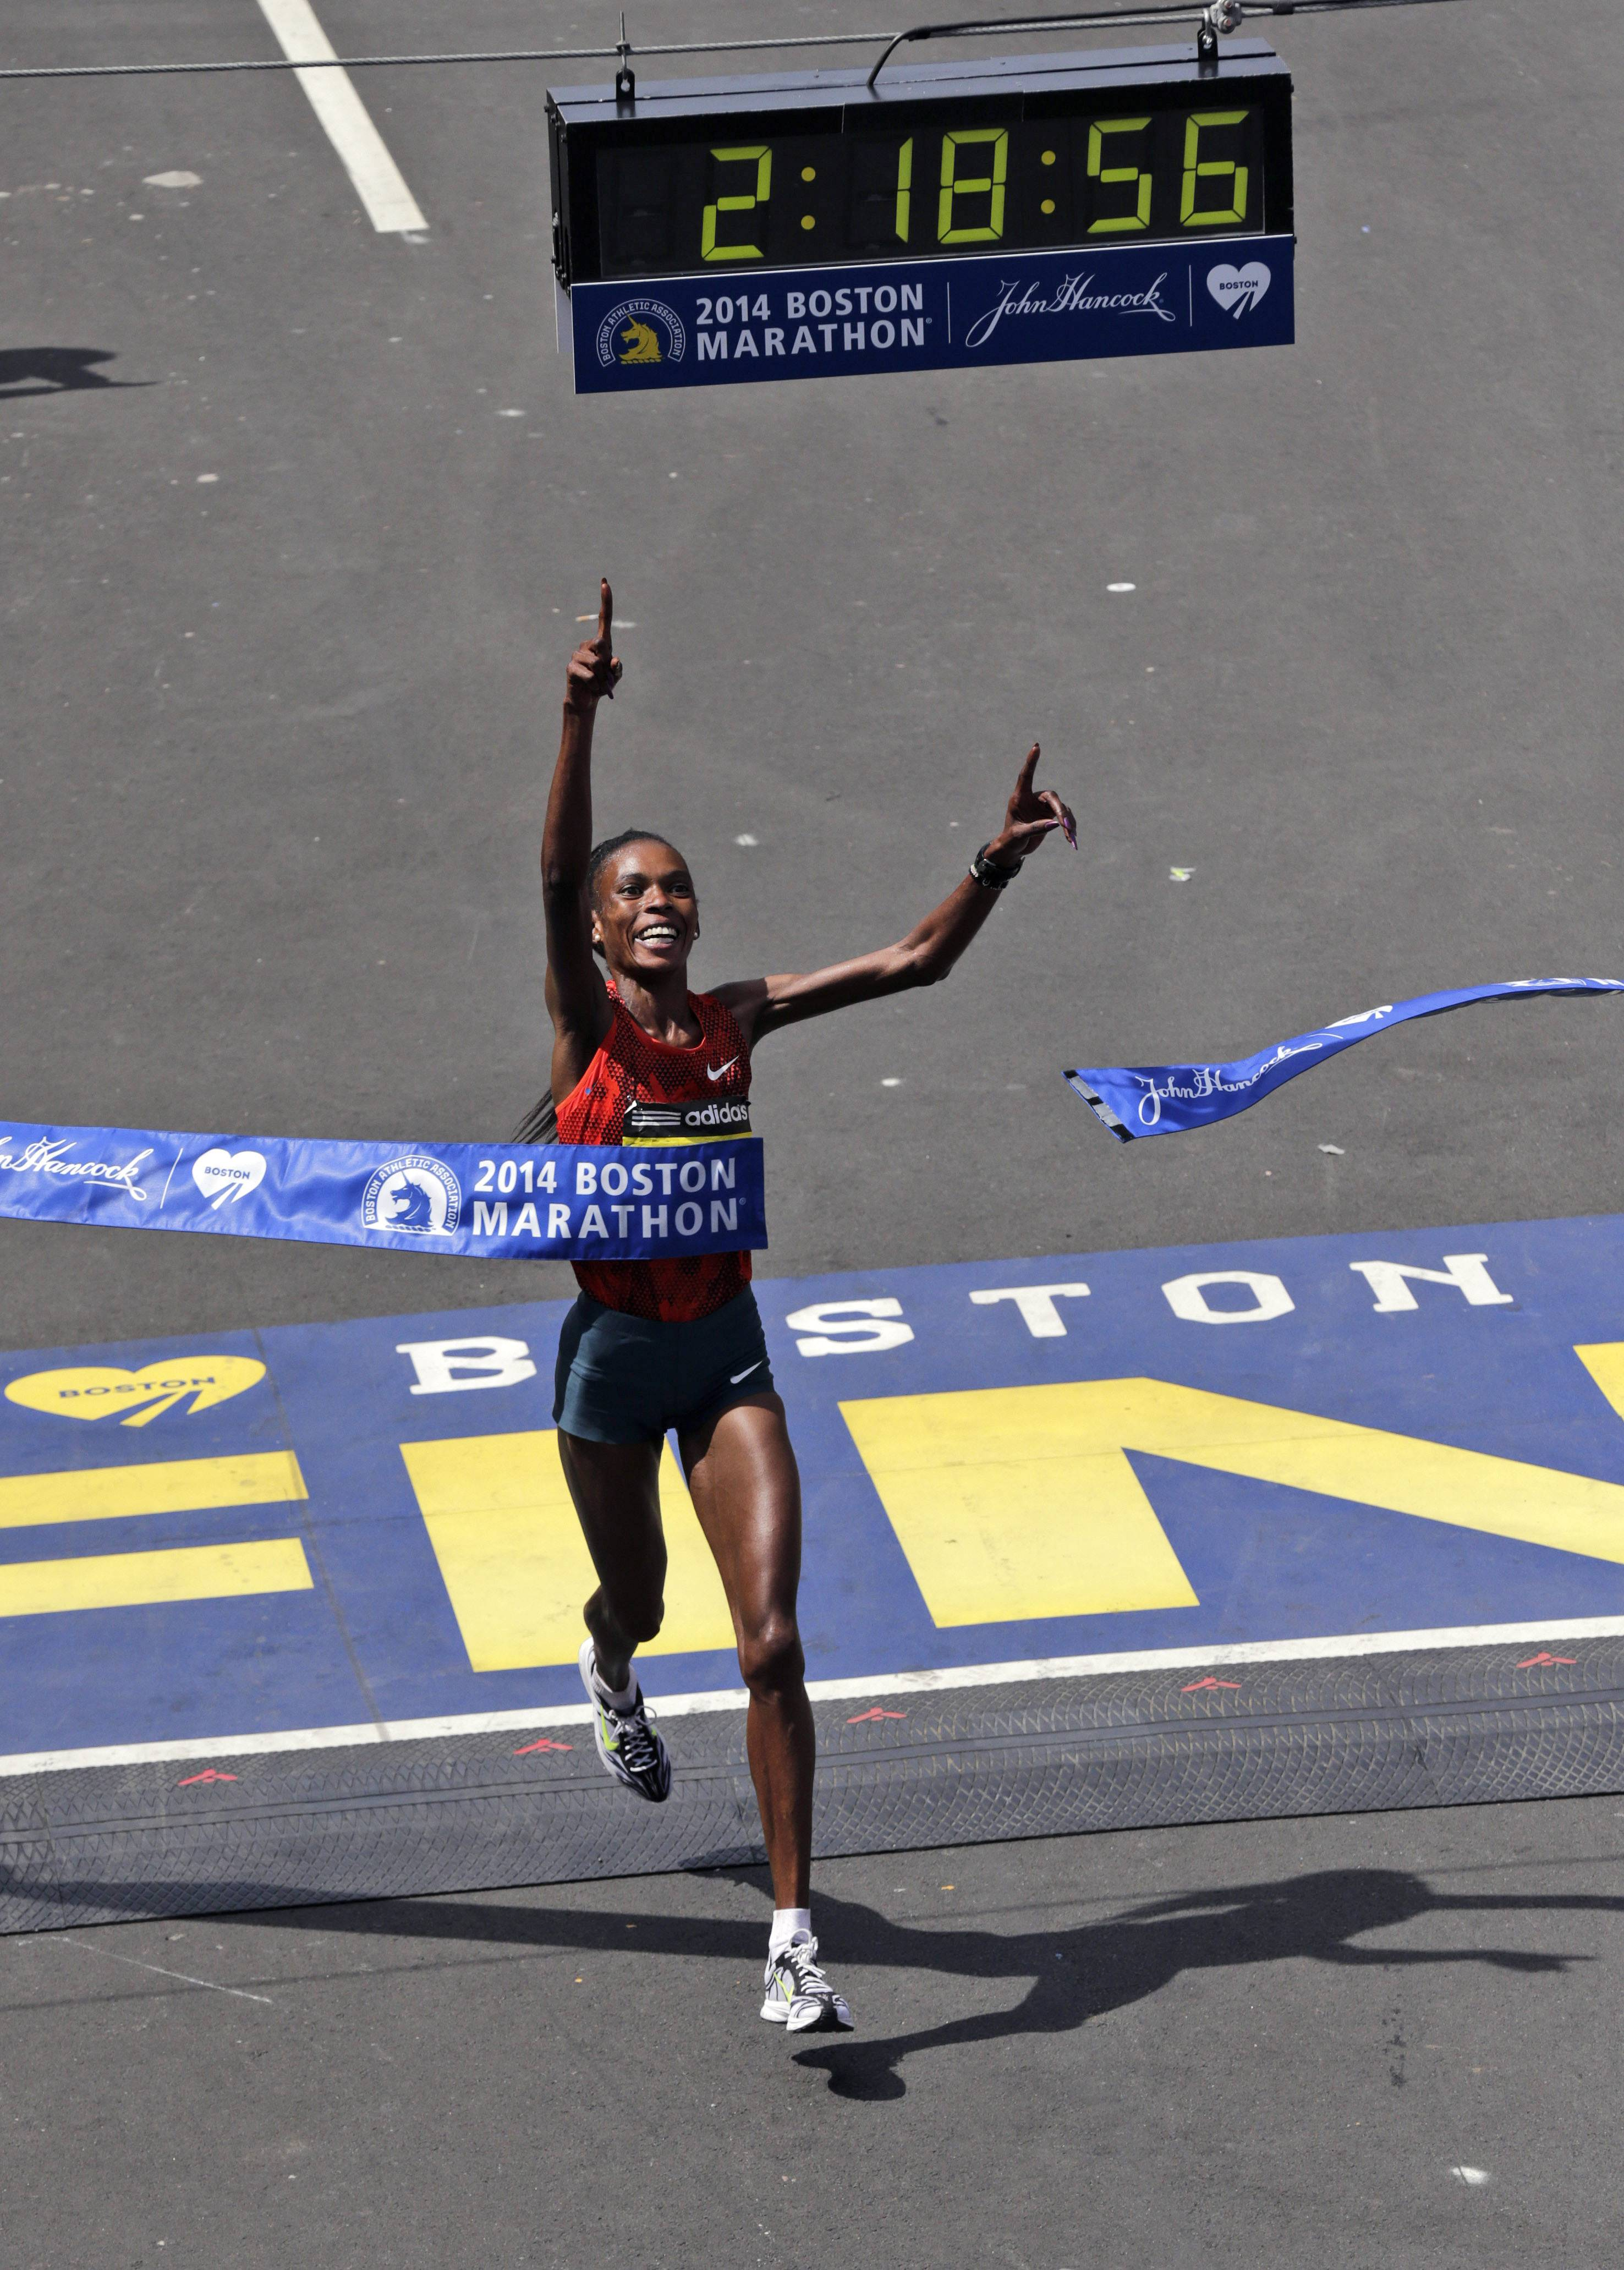 Rita Jeptoo, of Kenya, breaks the tape to win the women's division of the 118th Boston Marathon Monday, April 21, 2014 in Boston.